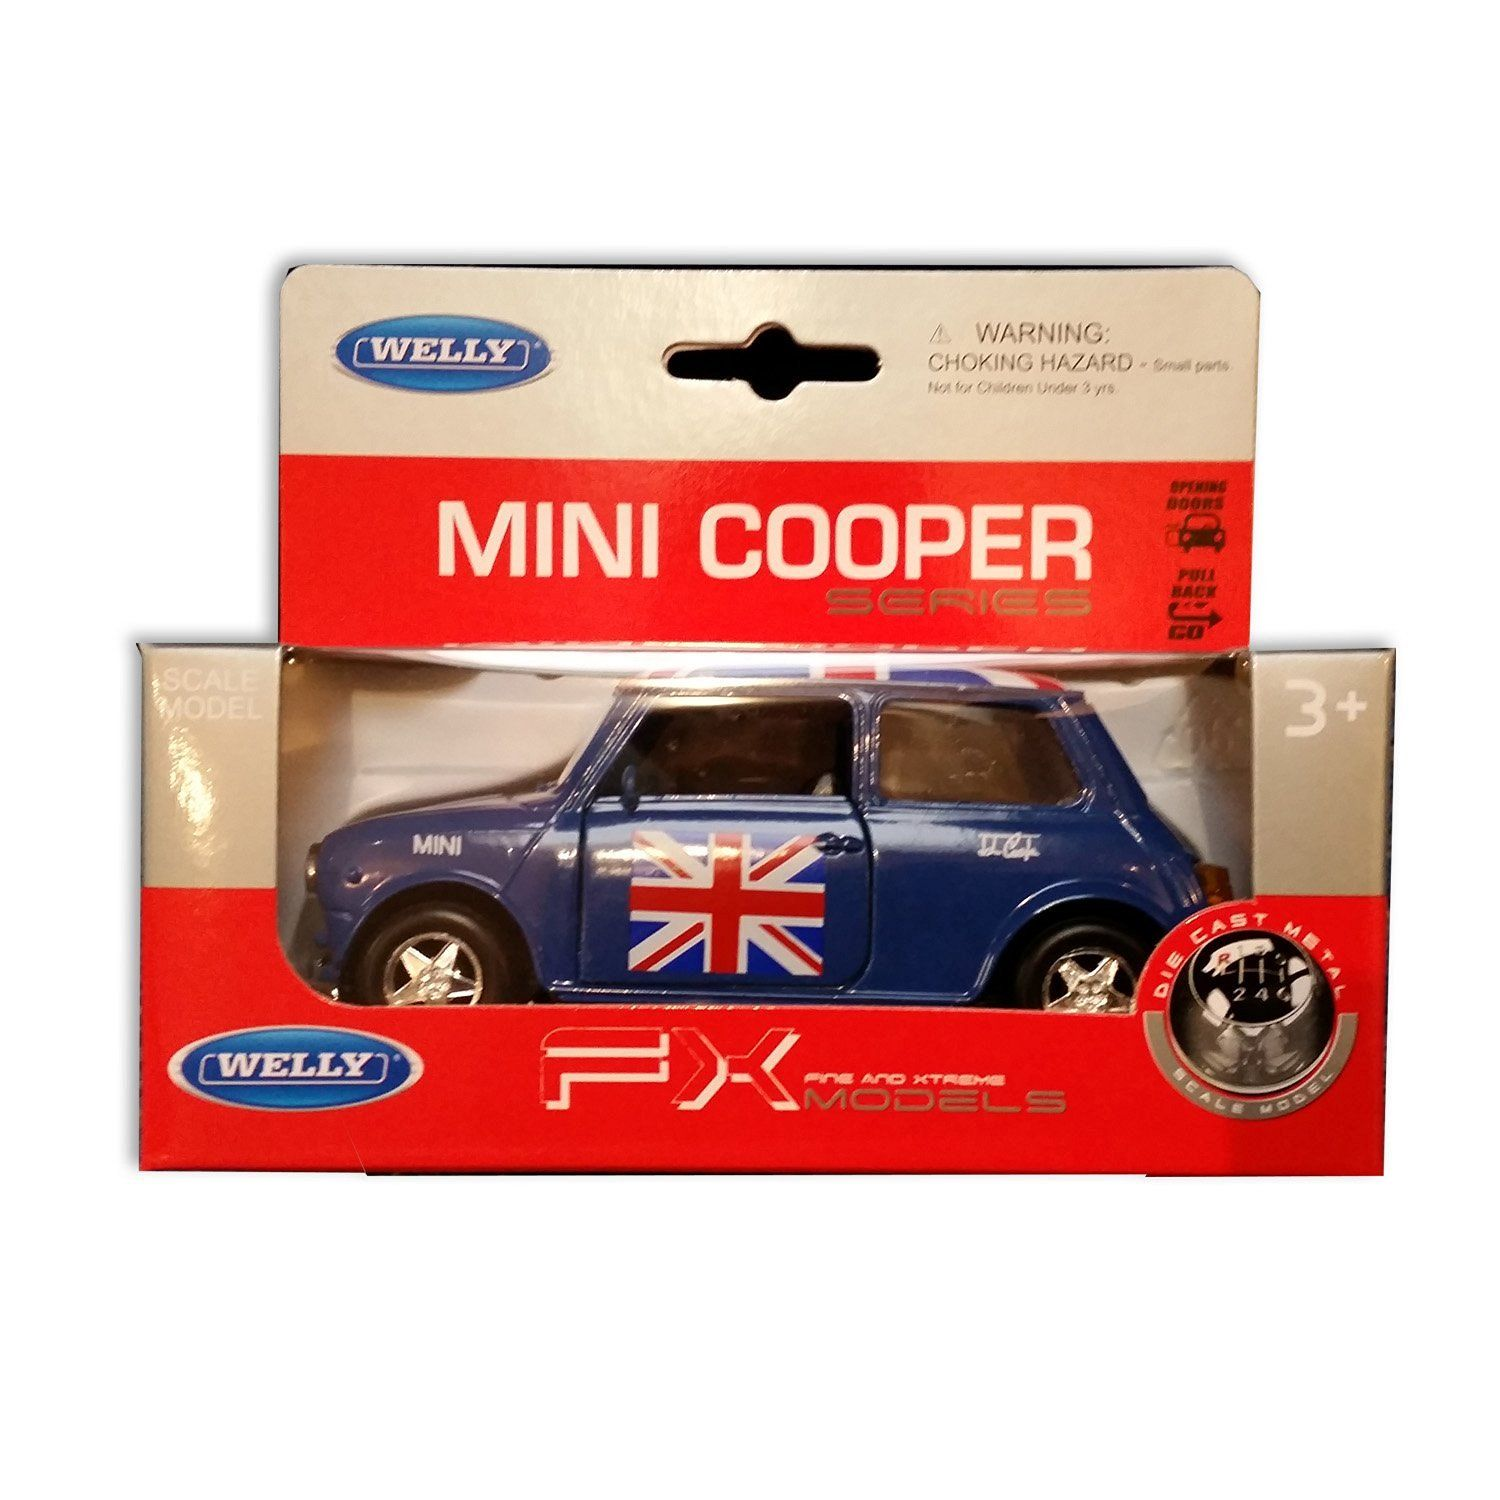 Detailed Blue Welly Brand Diecast Metal BMW Mini Cooper